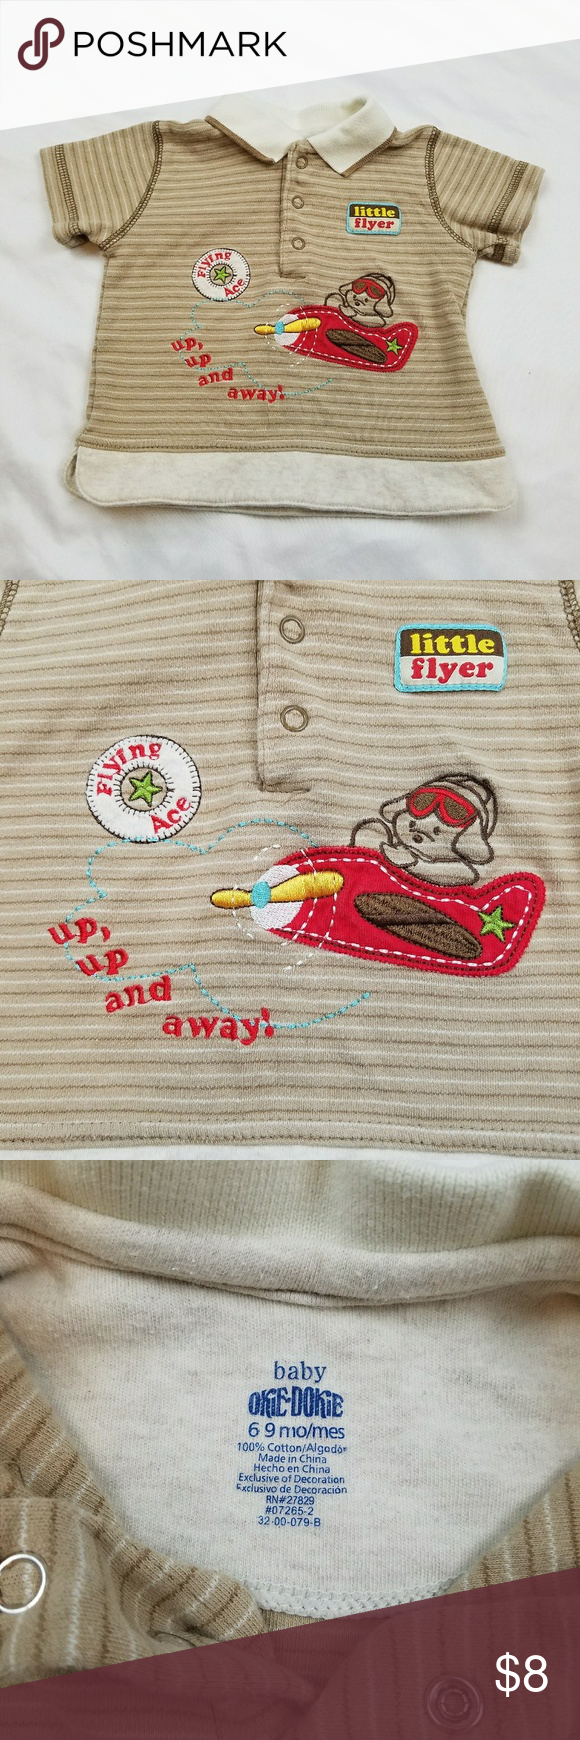 Okie dokie little flyer 6-9m top 100% cotton Okie dokie little flyer 6-9m top 100% cotton. Lightly worn in perfect condition. Inventory #O038 Shirts & Tops Tees - Short Sleeve